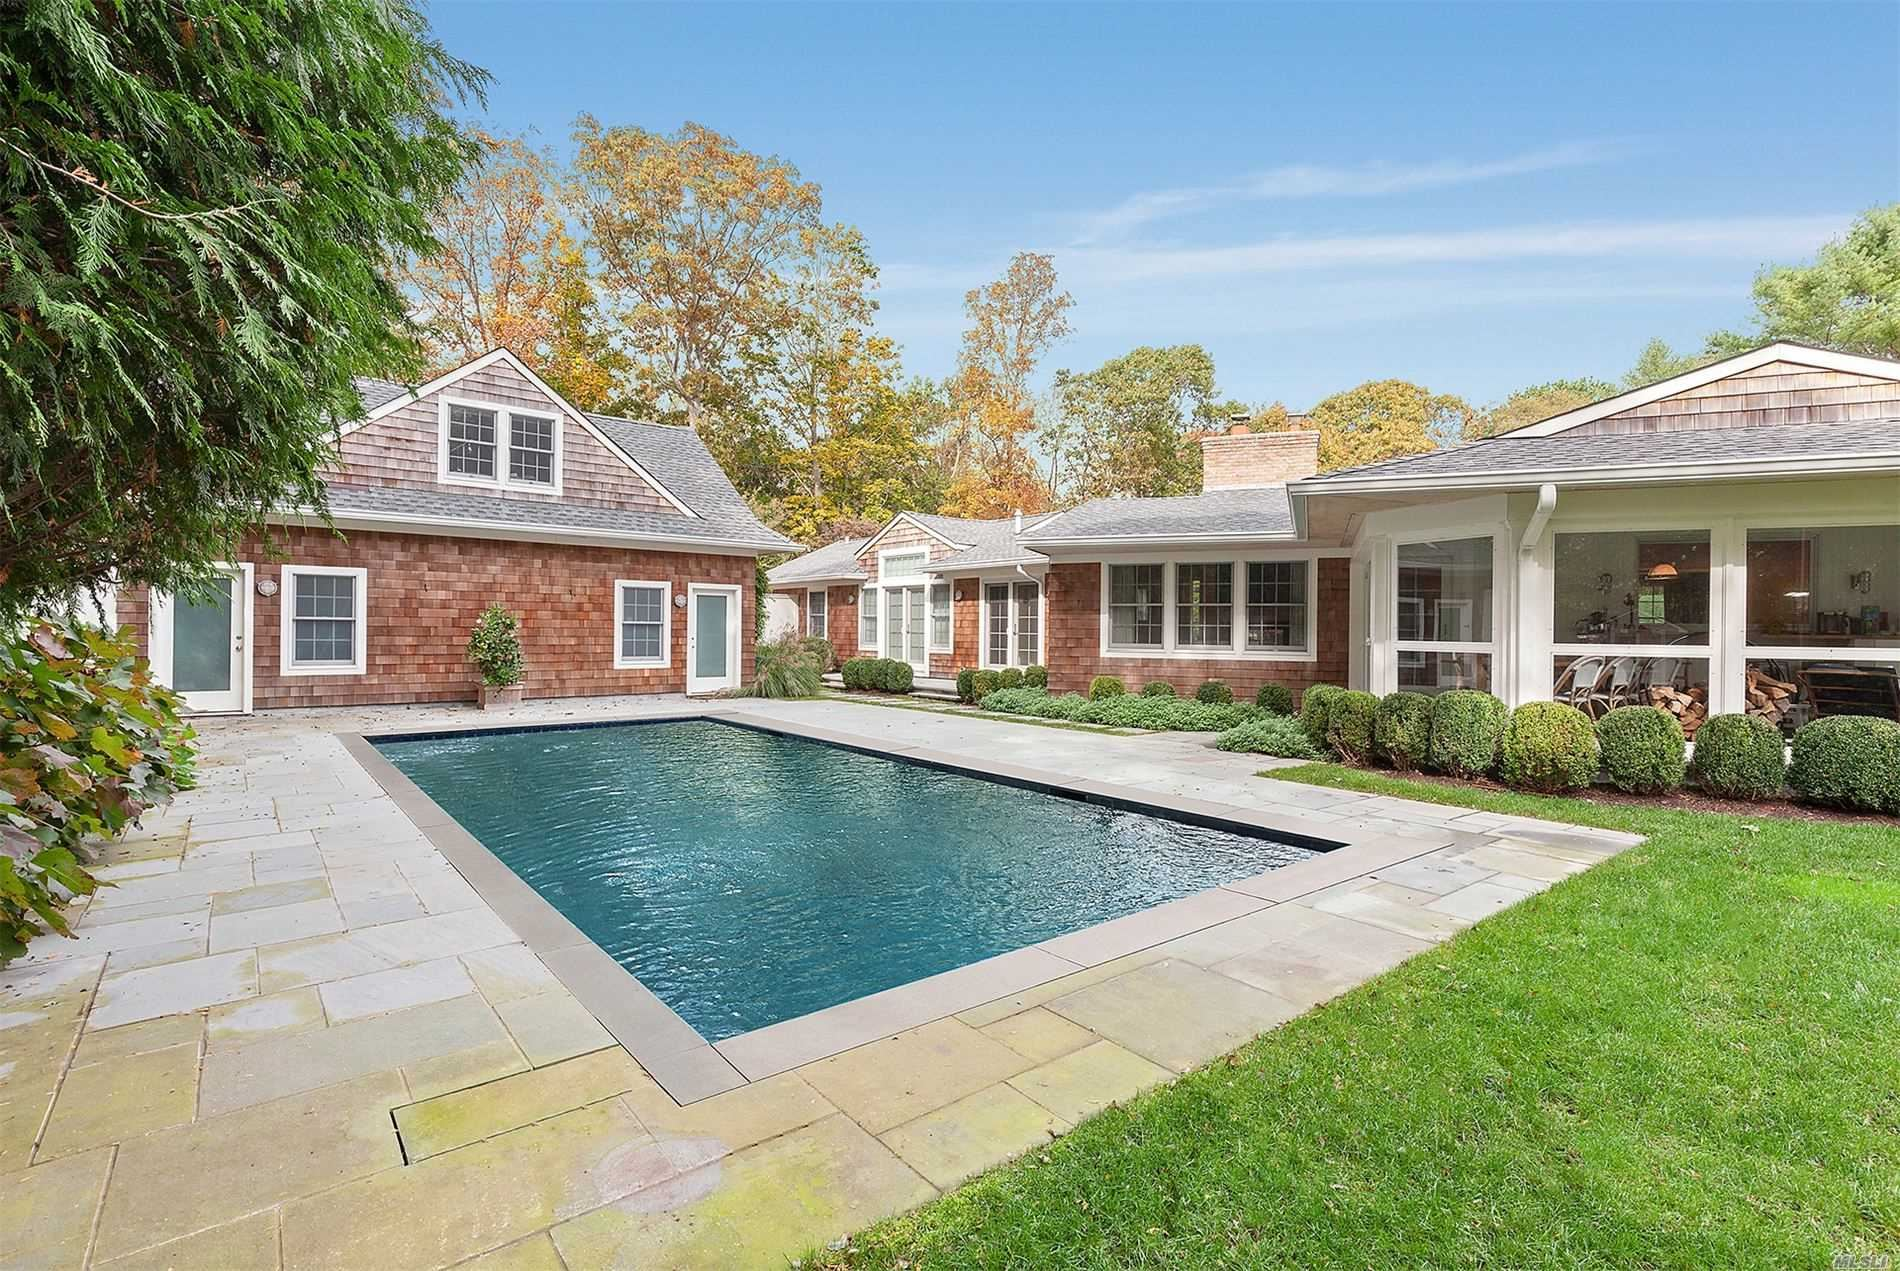 2 Old Point Road, Quogue, NY 11959 - MLS#: 3192675